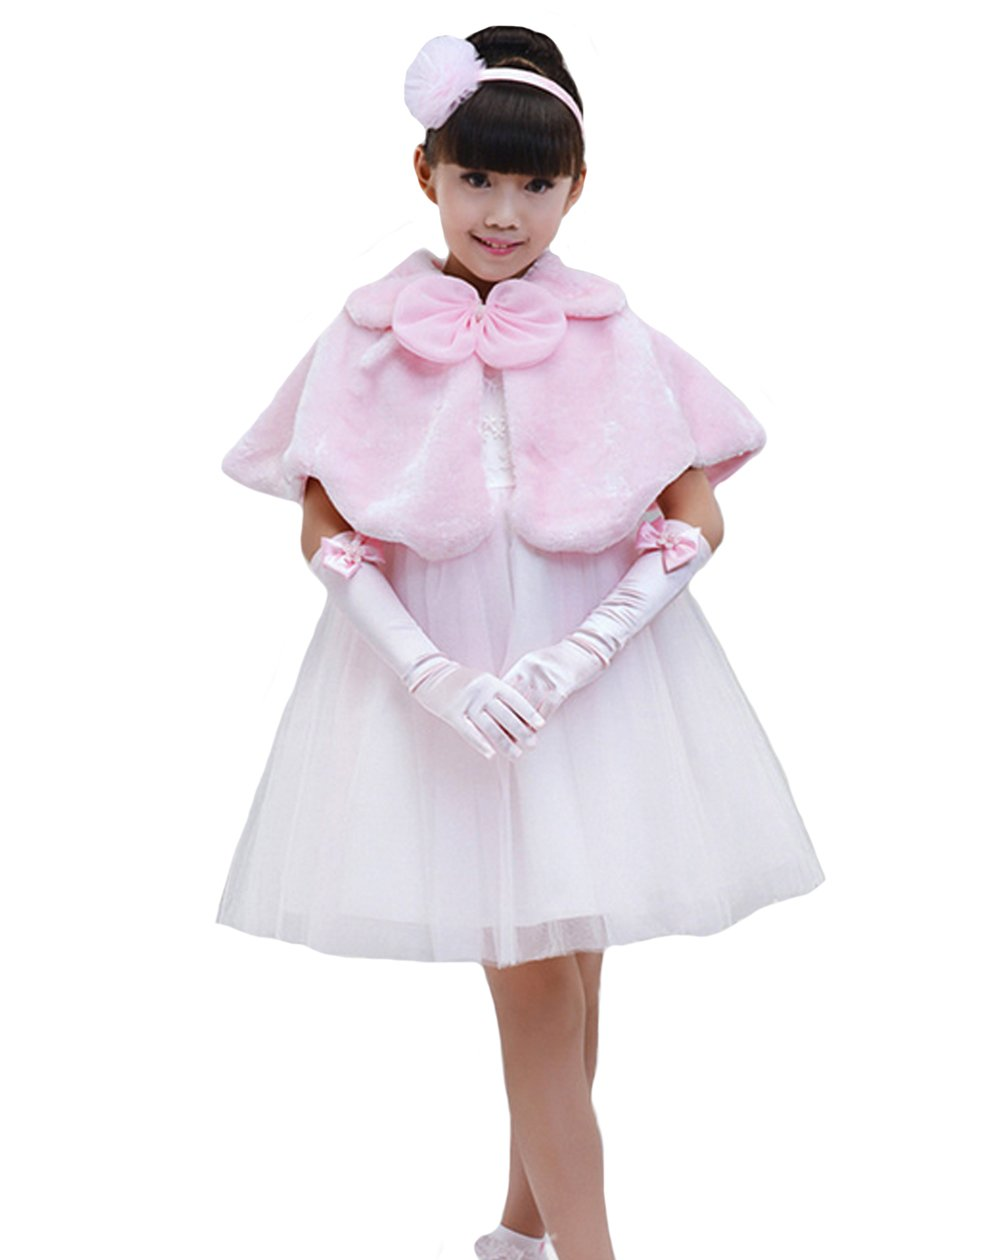 Genda 2Archer Flower Girl Cozy Faux Fur Bolero Shrug Ribbon Ties Princess Cape(Pink, M) BBZYRS001-PK-M